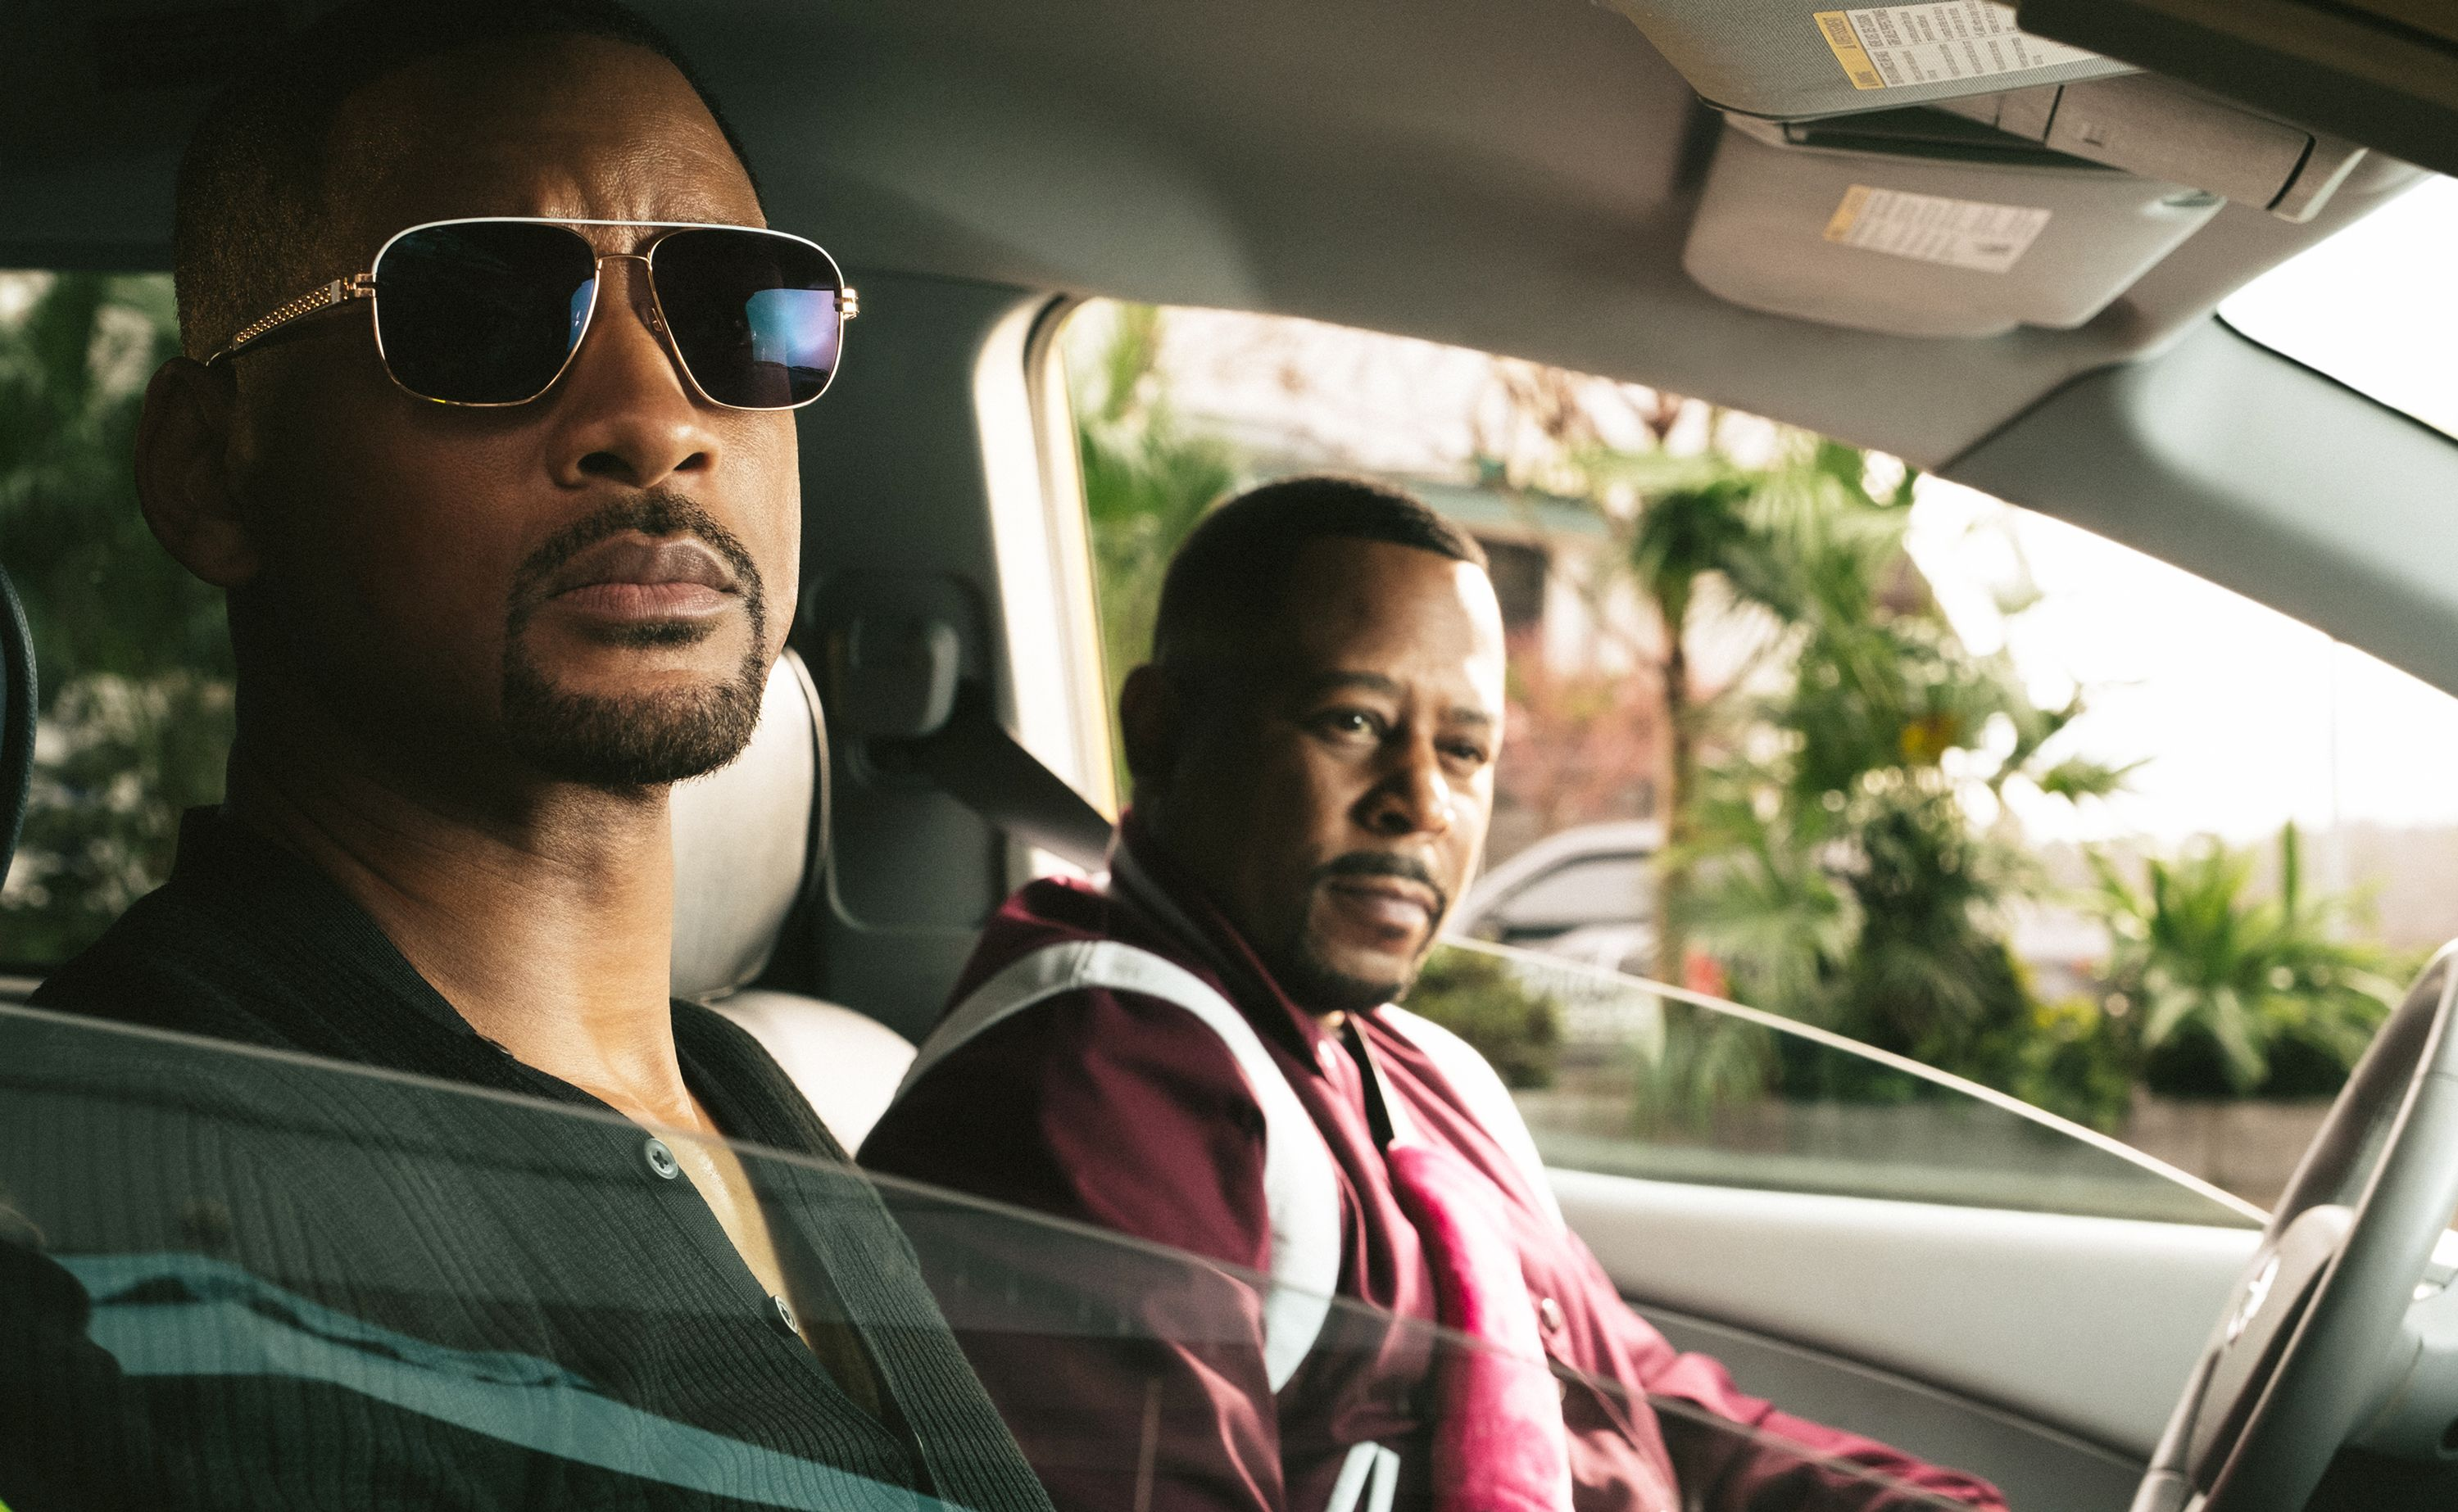 Why Bad Boys for Life has been a box-office hit